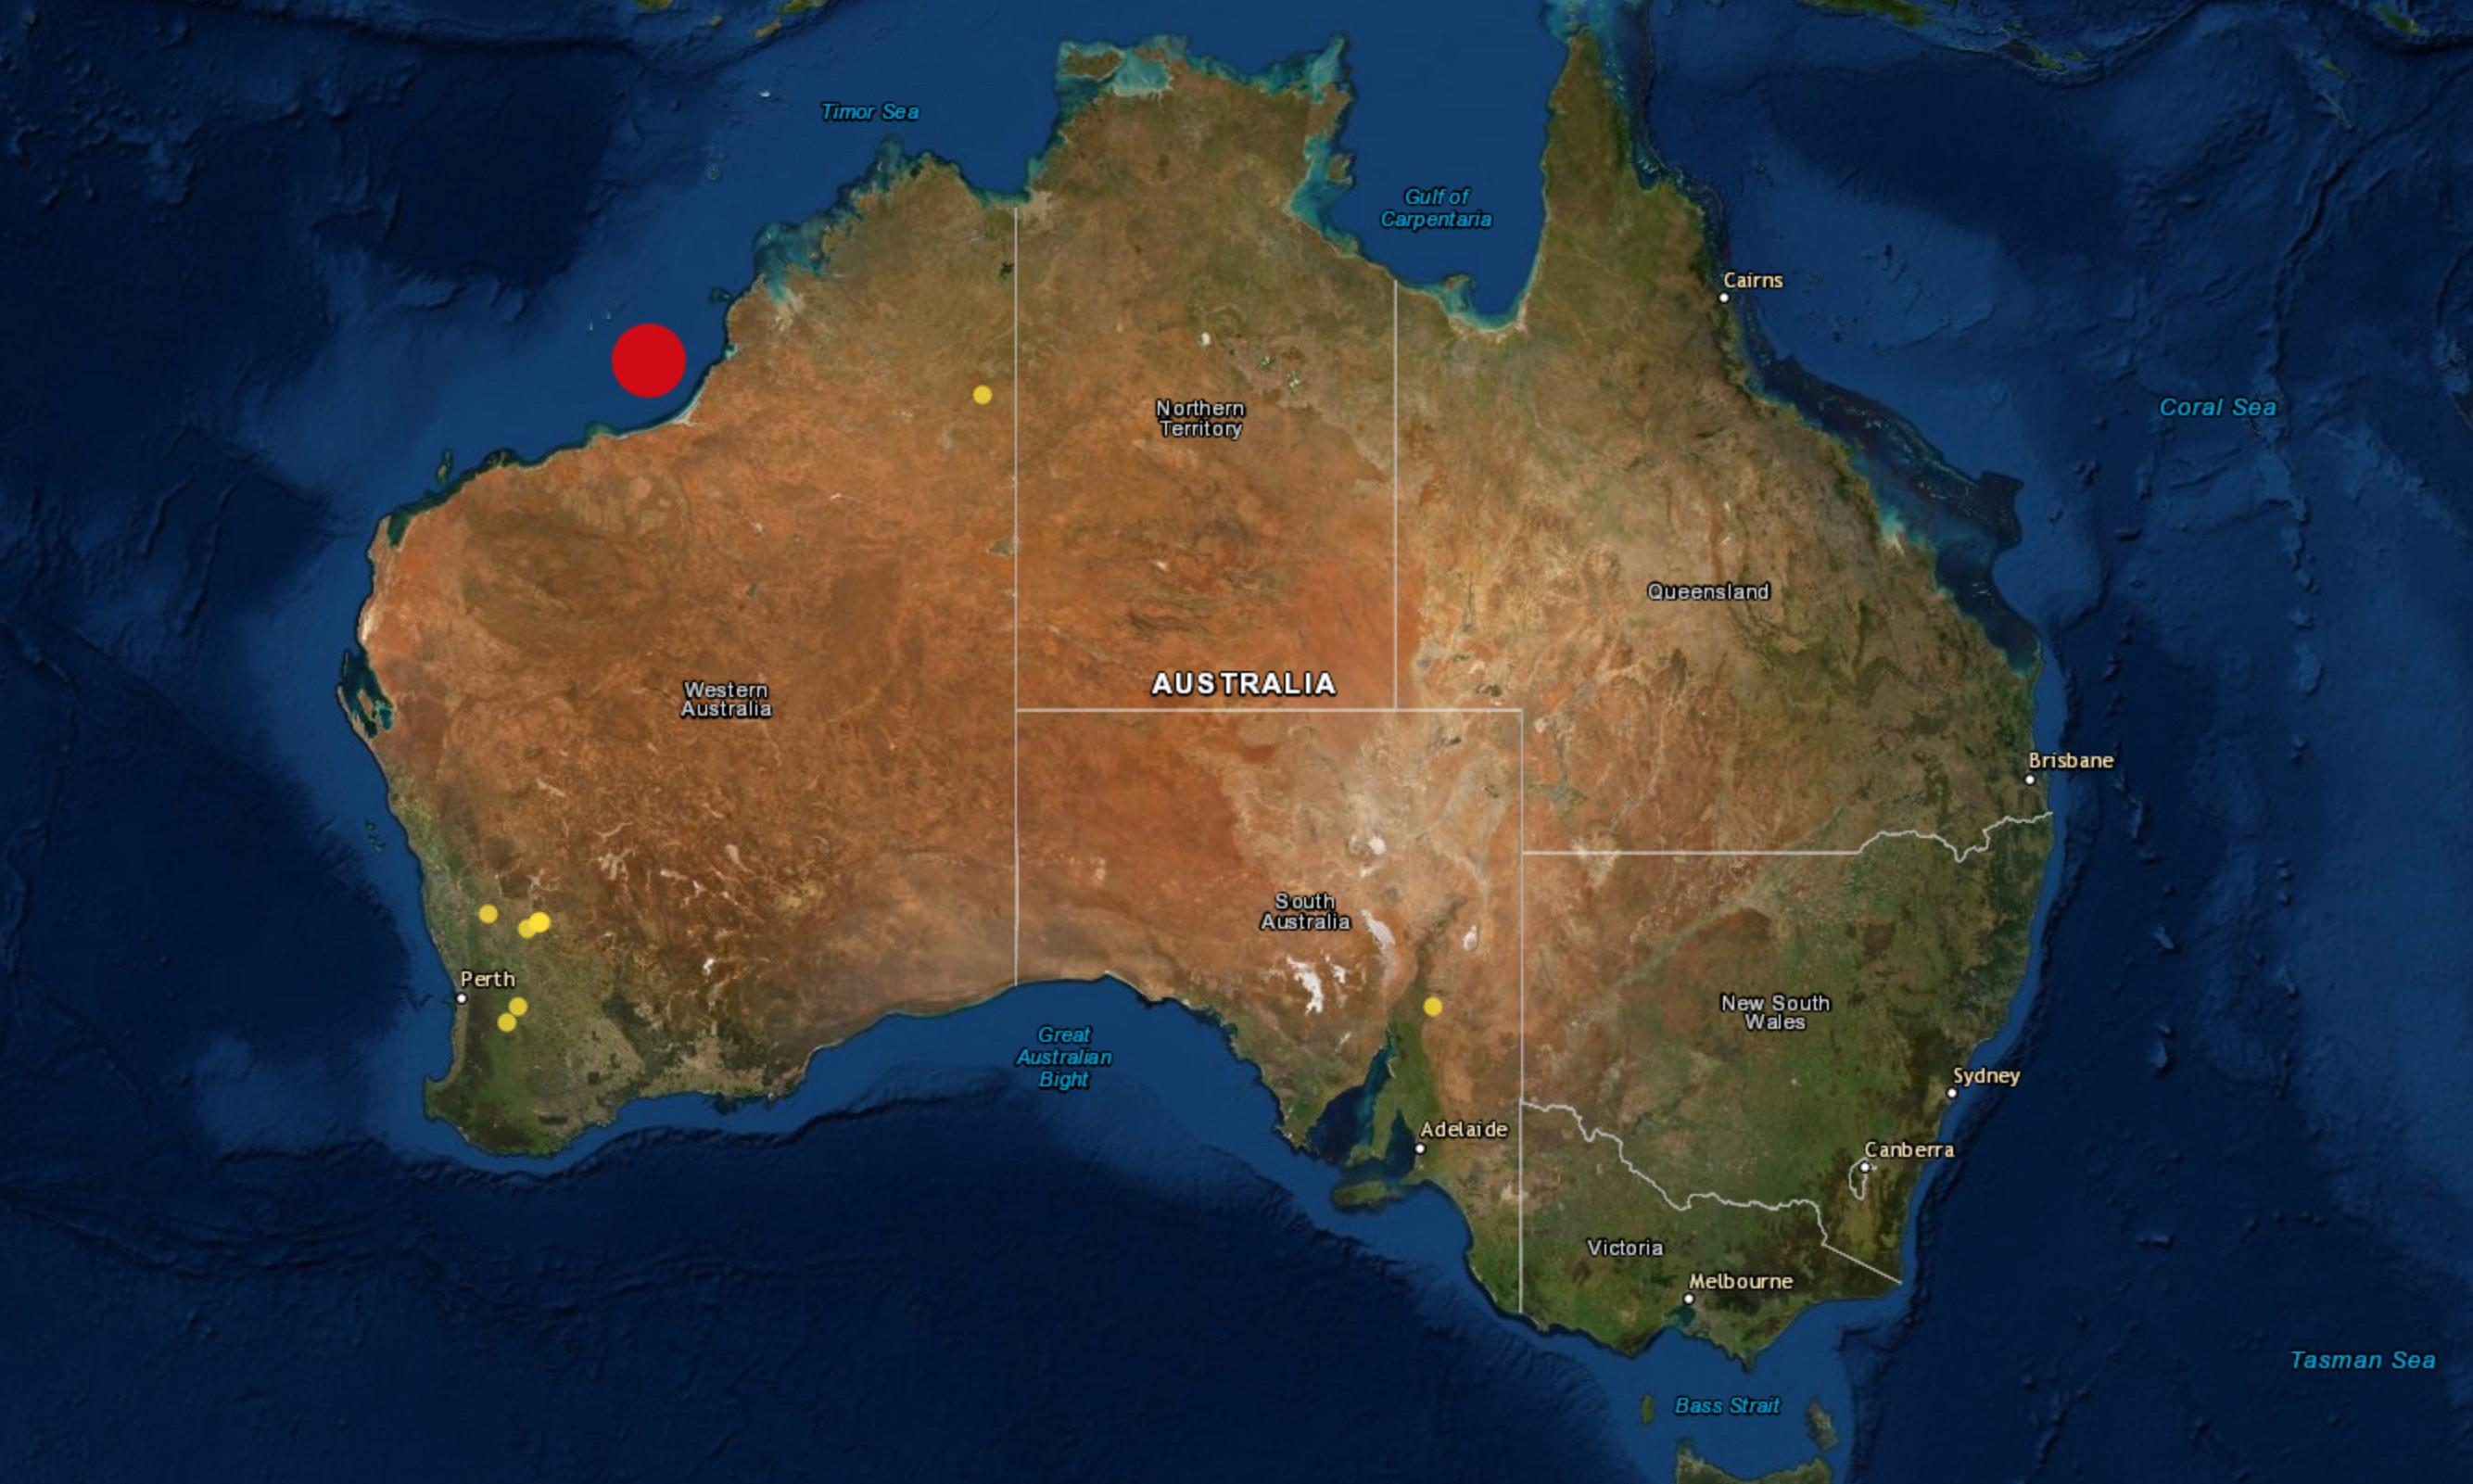 Western Australia earthquake: 6.6 magnitude tremor felt from Broome to Perth